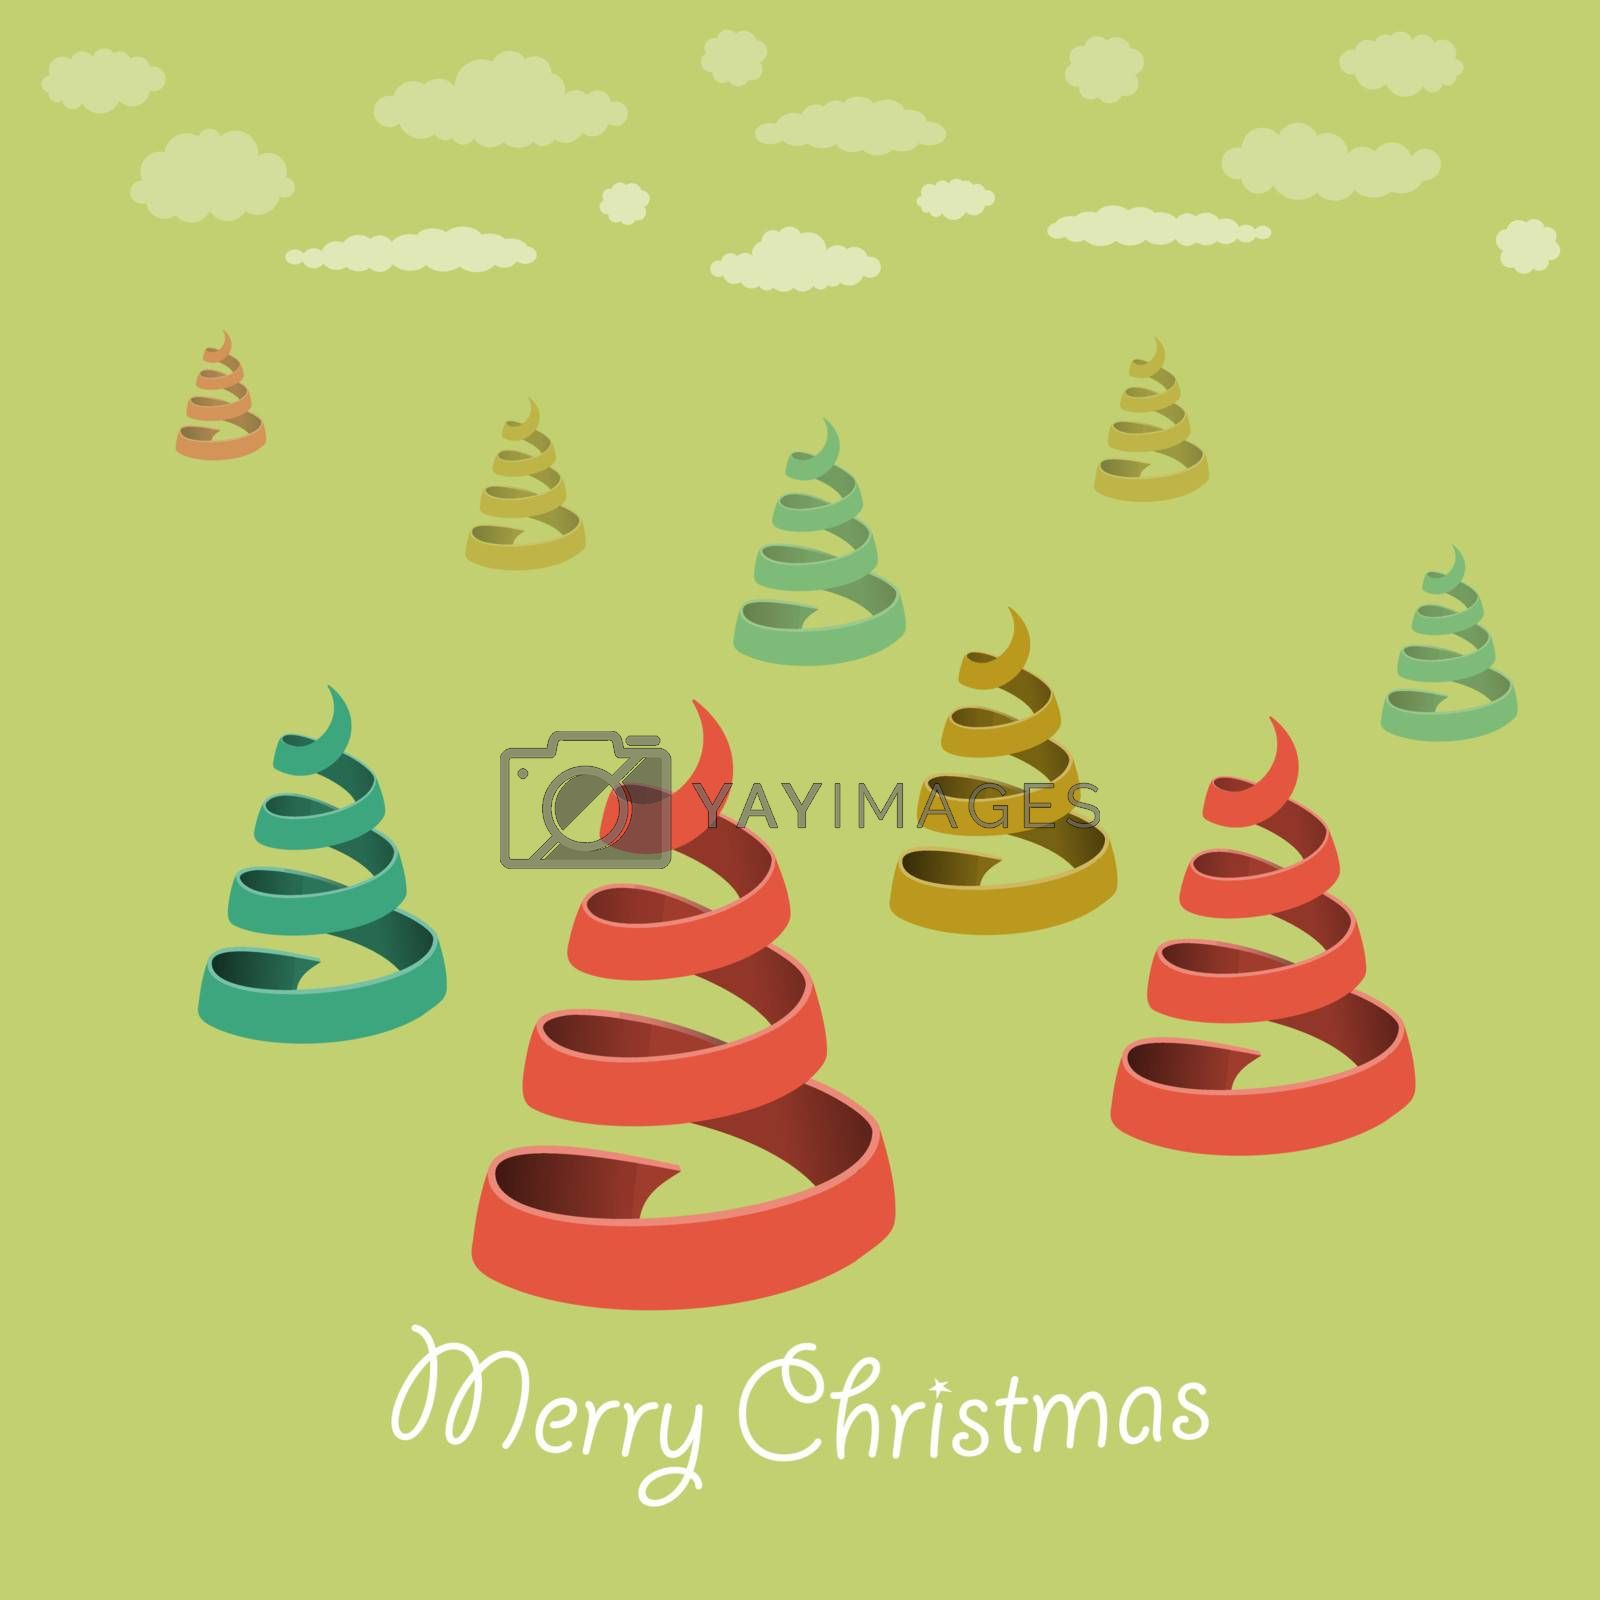 Christmas Vector Illustration for Xmas Holiday or Card Design